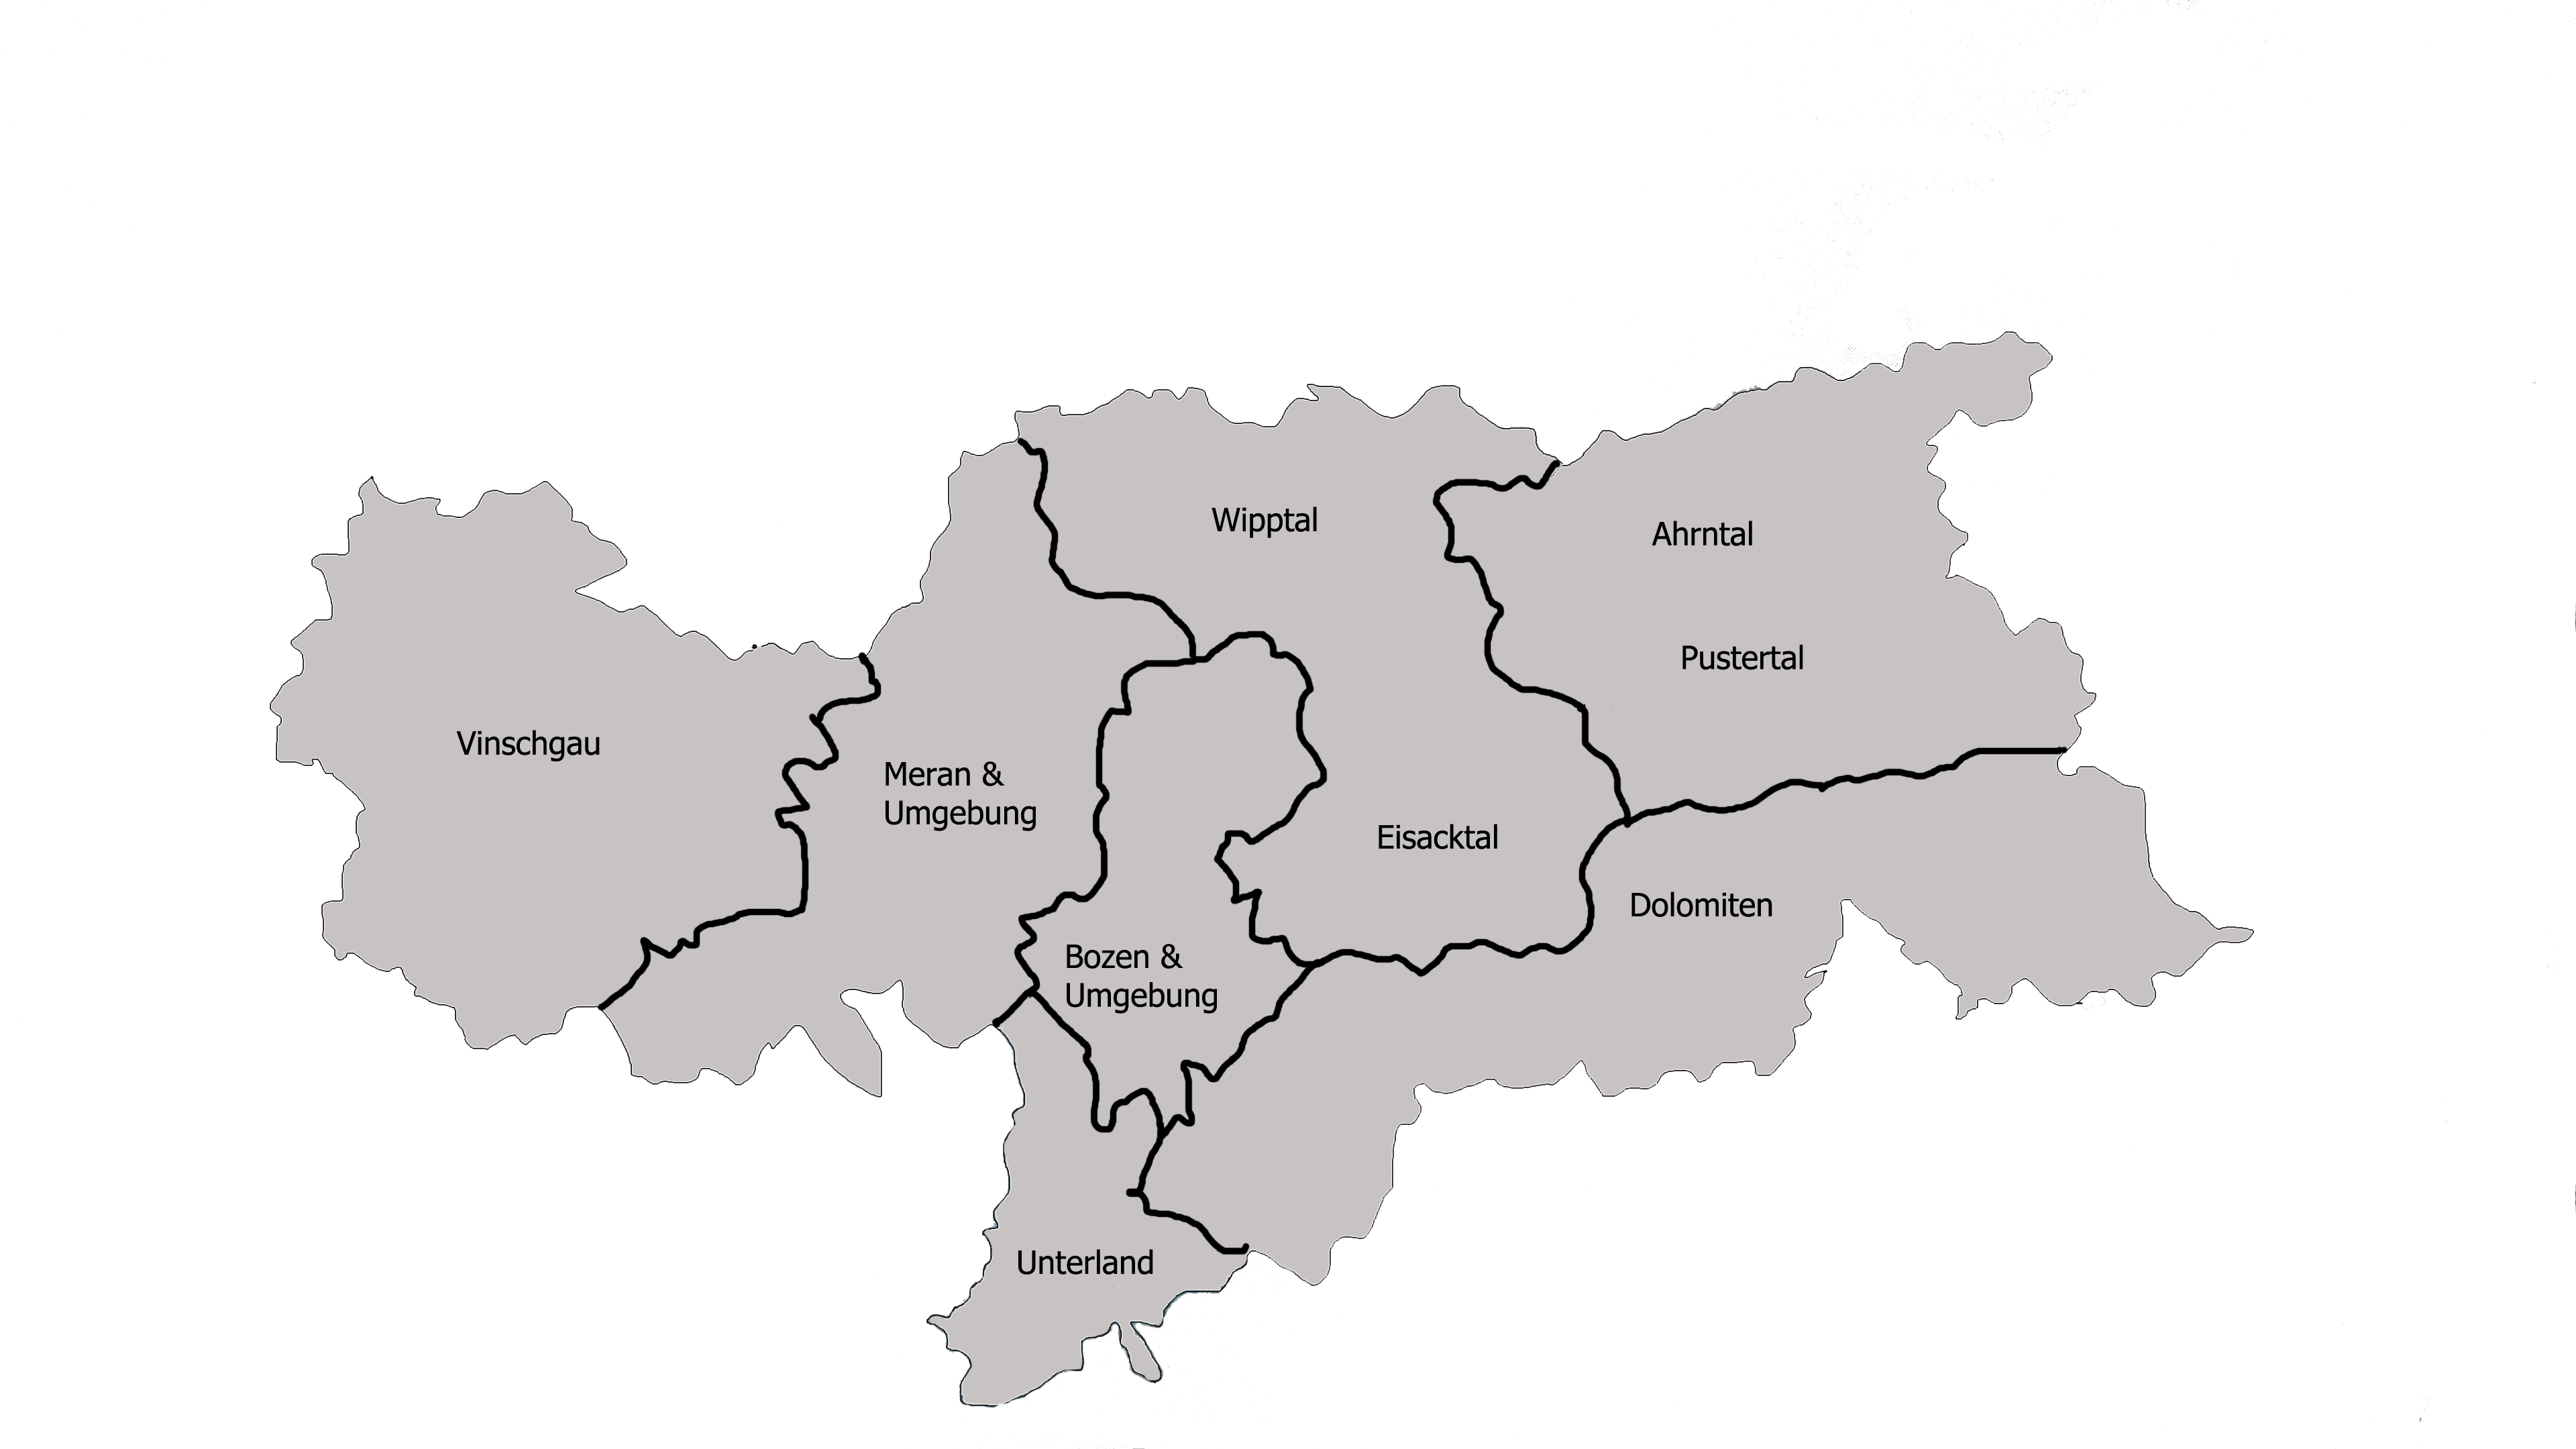 The regions of South Tyrol